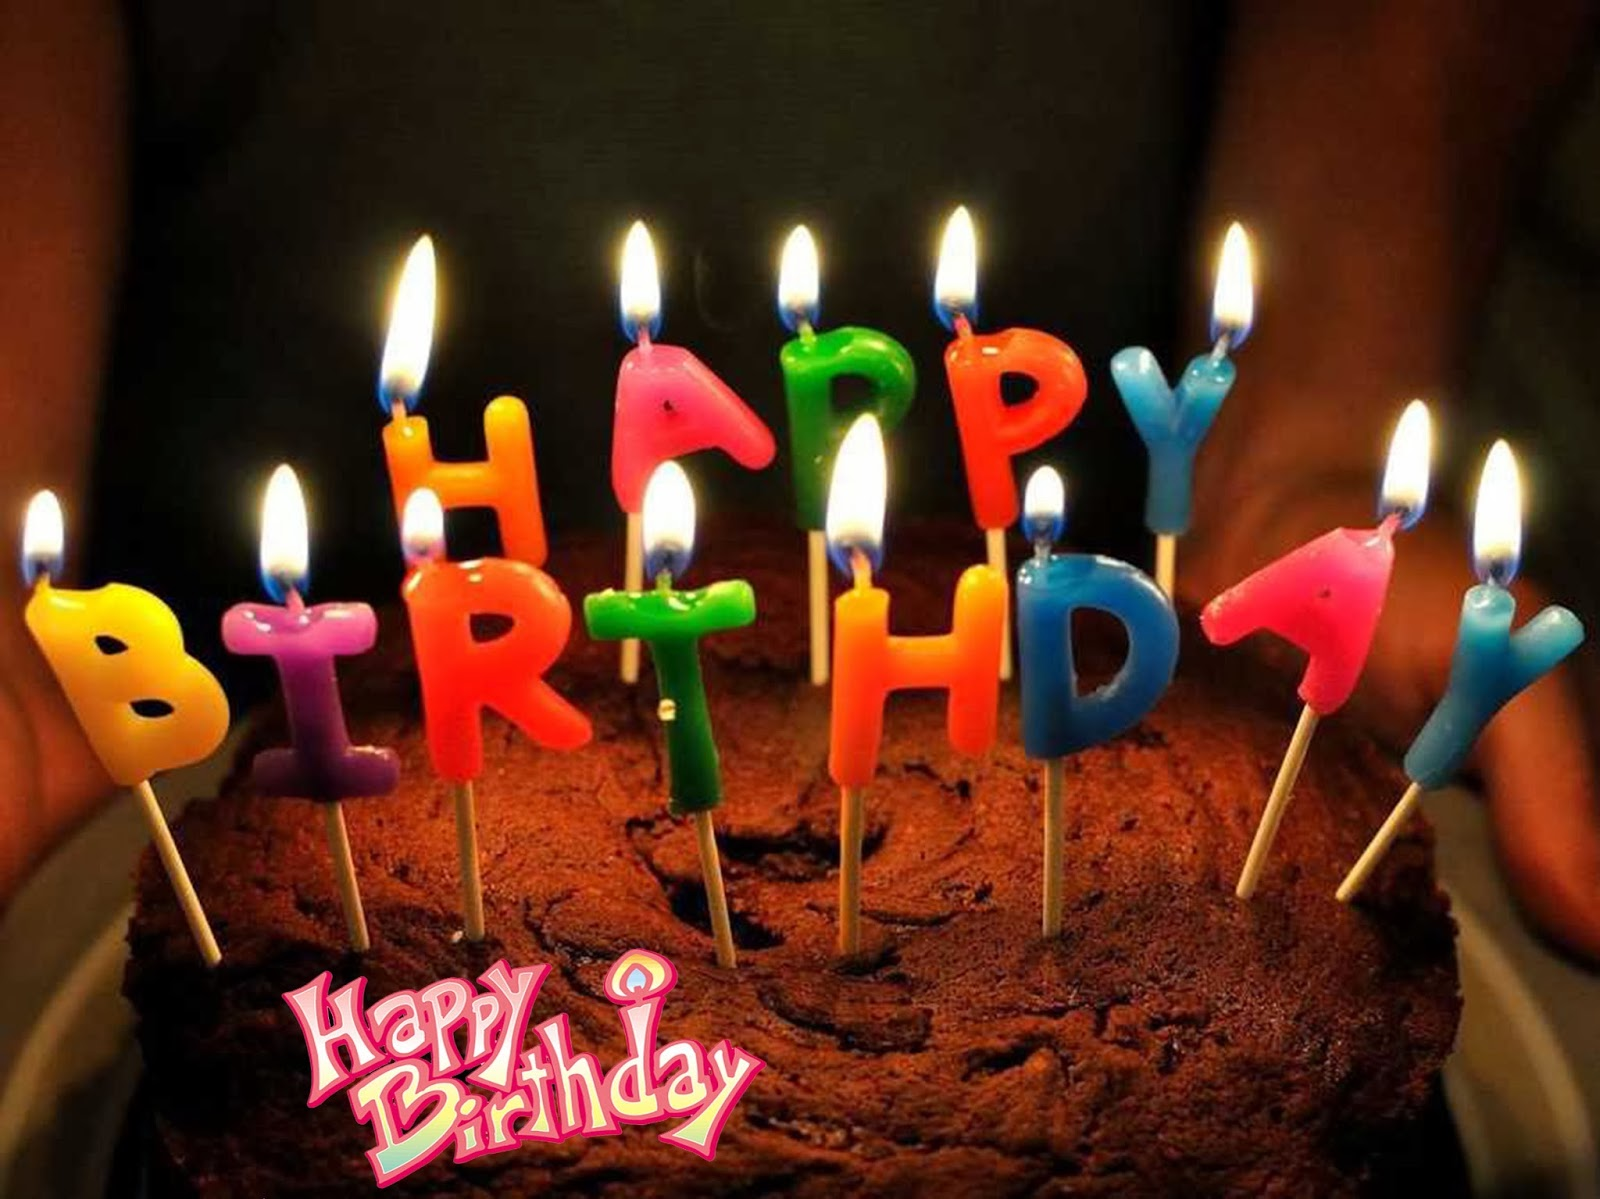 Happy-Birthday-Wishes-Image-HD